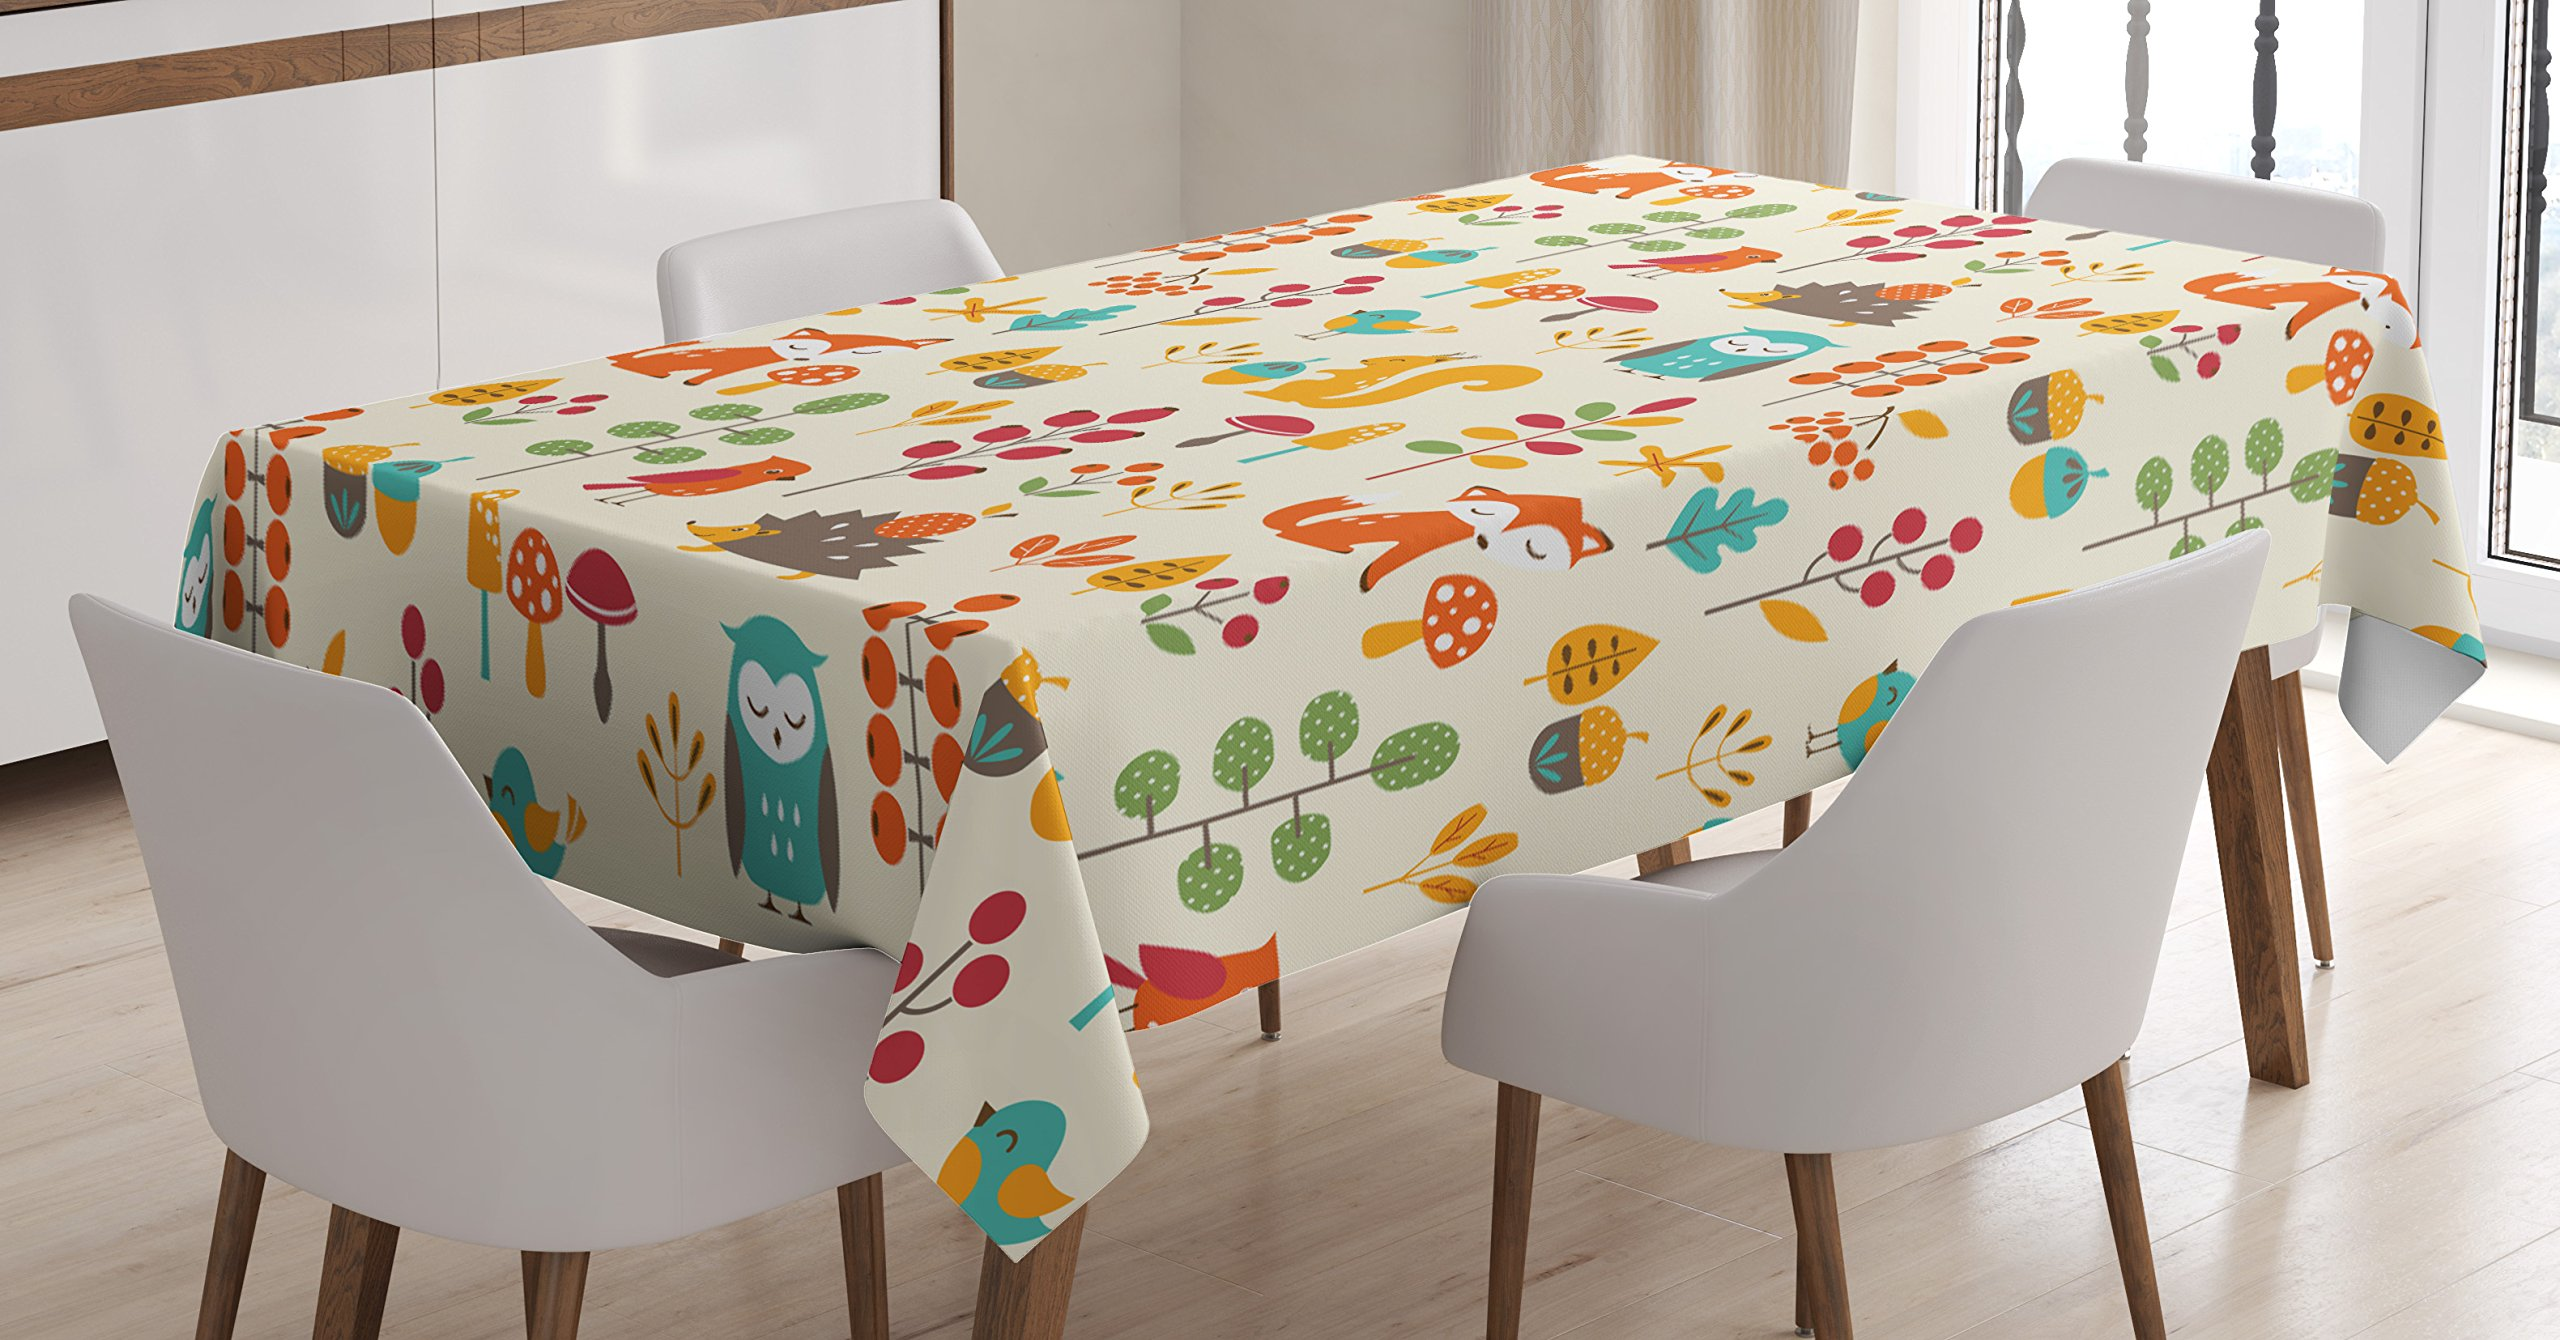 Ambesonne Children Tablecloth, Cute Kids Autumn Pattern with Owl Fox Squirrel Birds Animal Leaves Artsy Print, Dining Room Kitchen Rectangular Table Cover, 60 W X 84 L inches, Multicolor